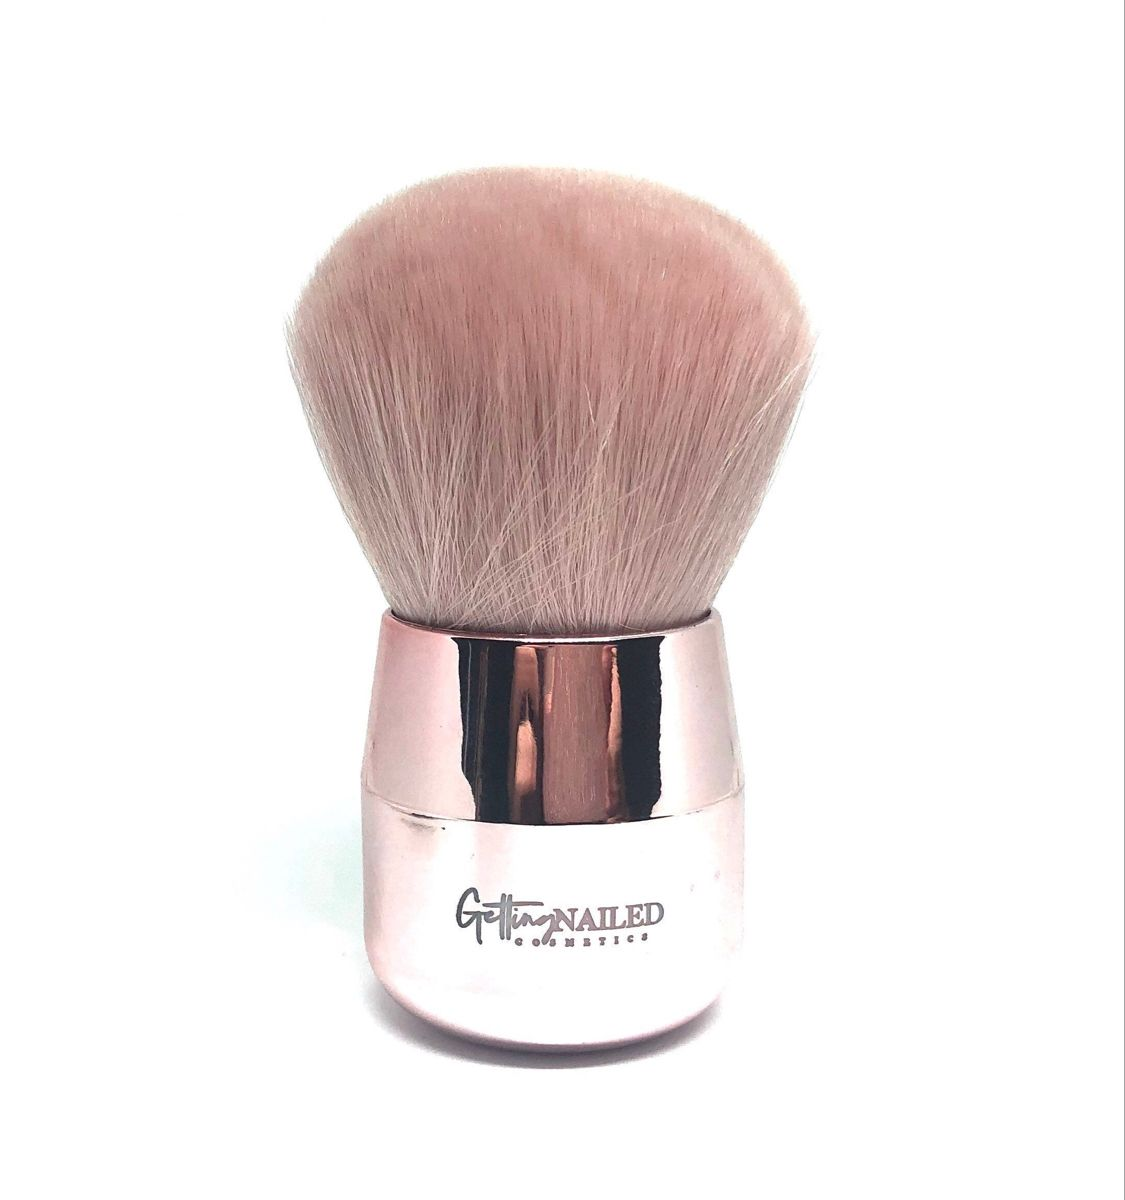 #foundation #makeupbrushes #makeupbrushesset